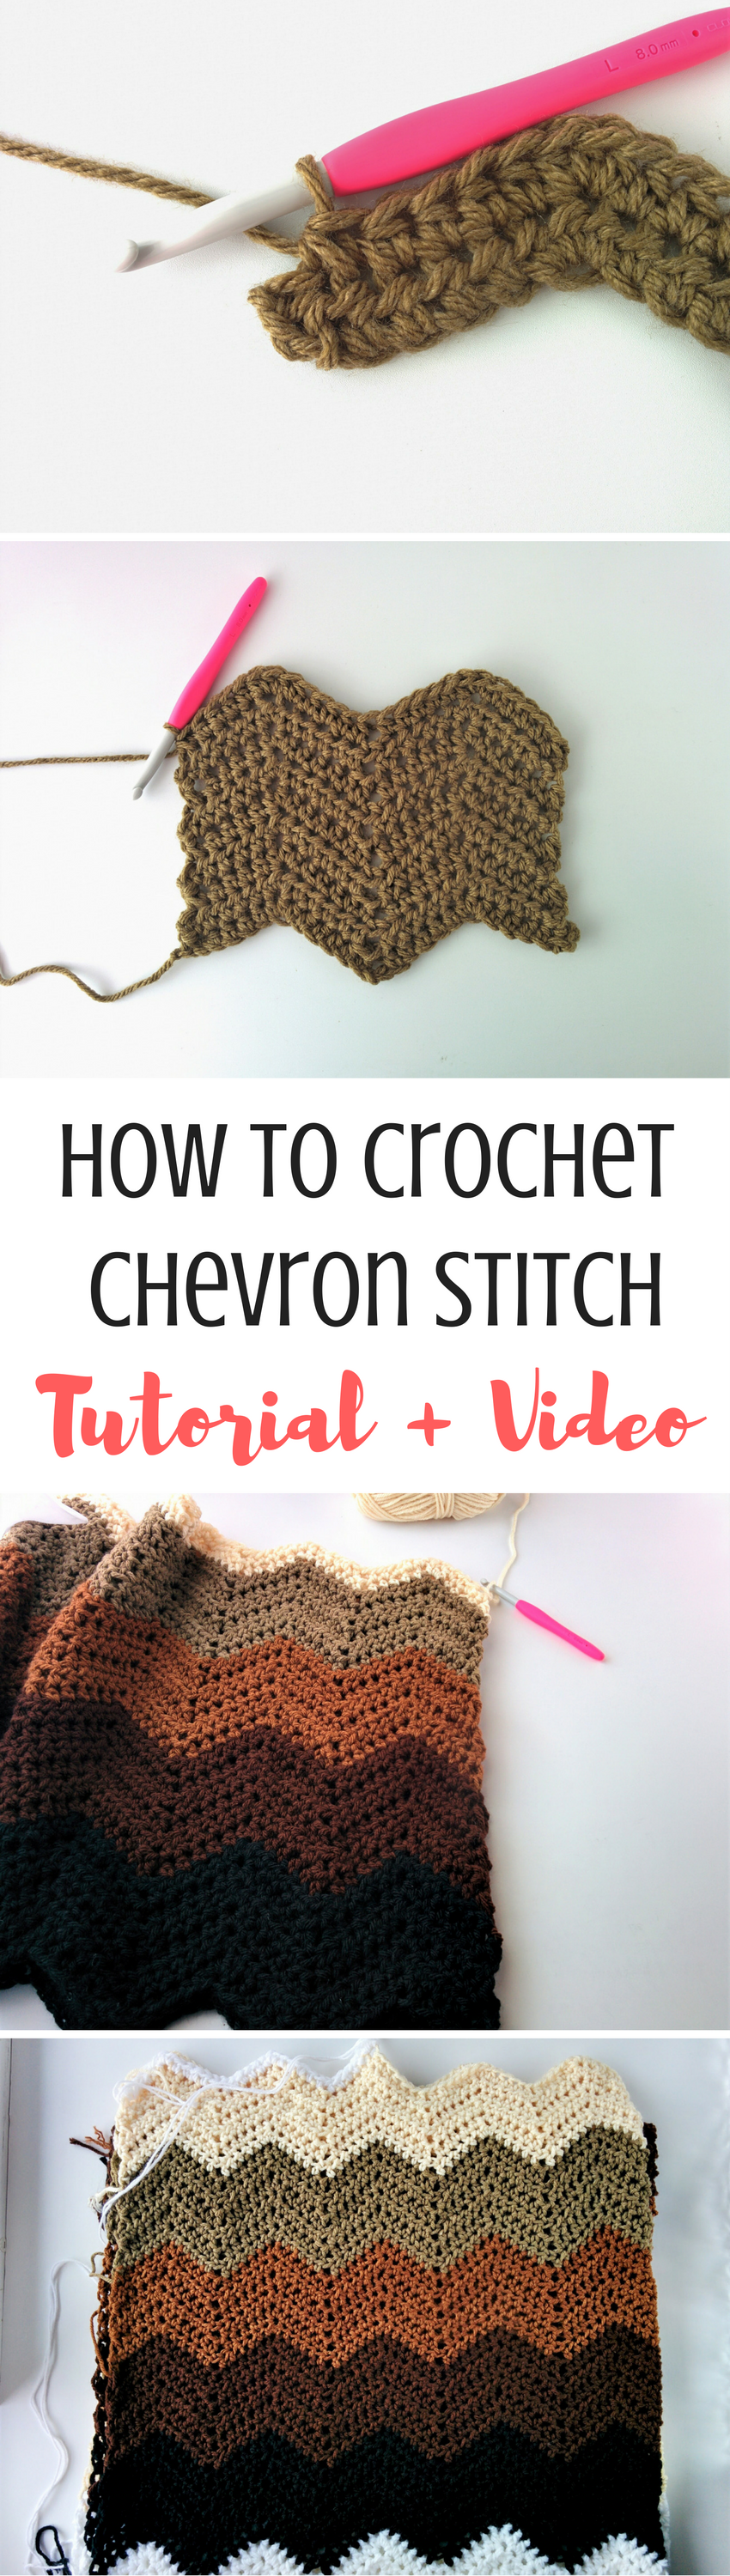 How to Crochet Chevron Stitch [Video + Written] | Pinterest | Häkeln ...